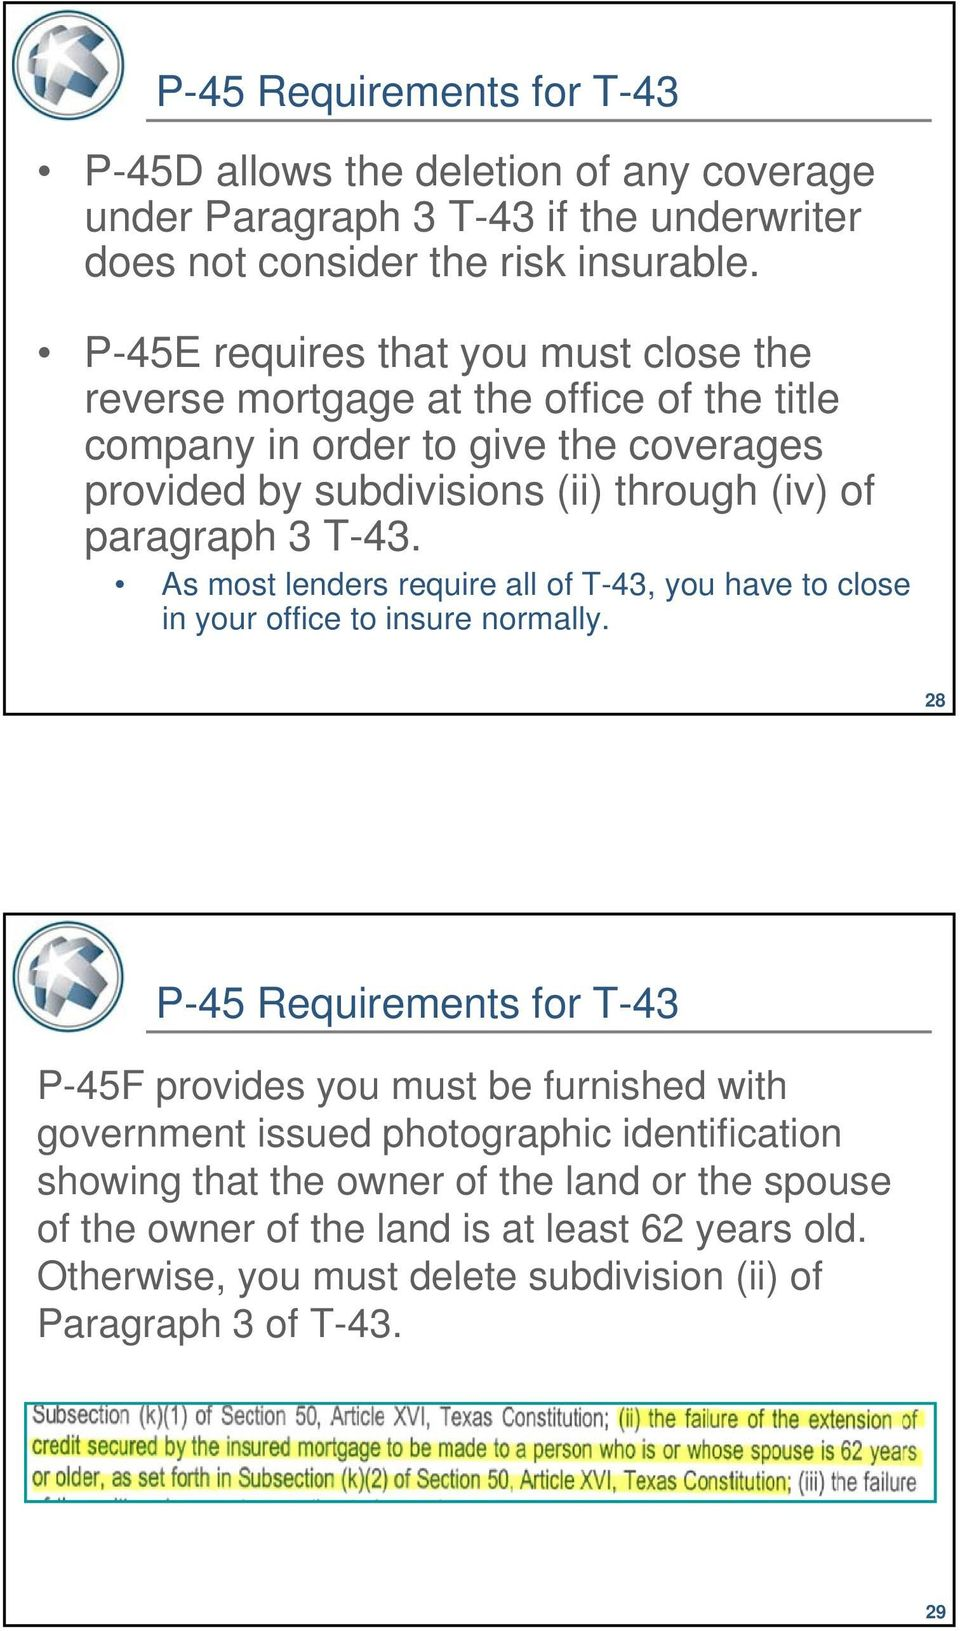 3 T-43. As most lenders require all of T-43, you have to close in your office to insure normally.